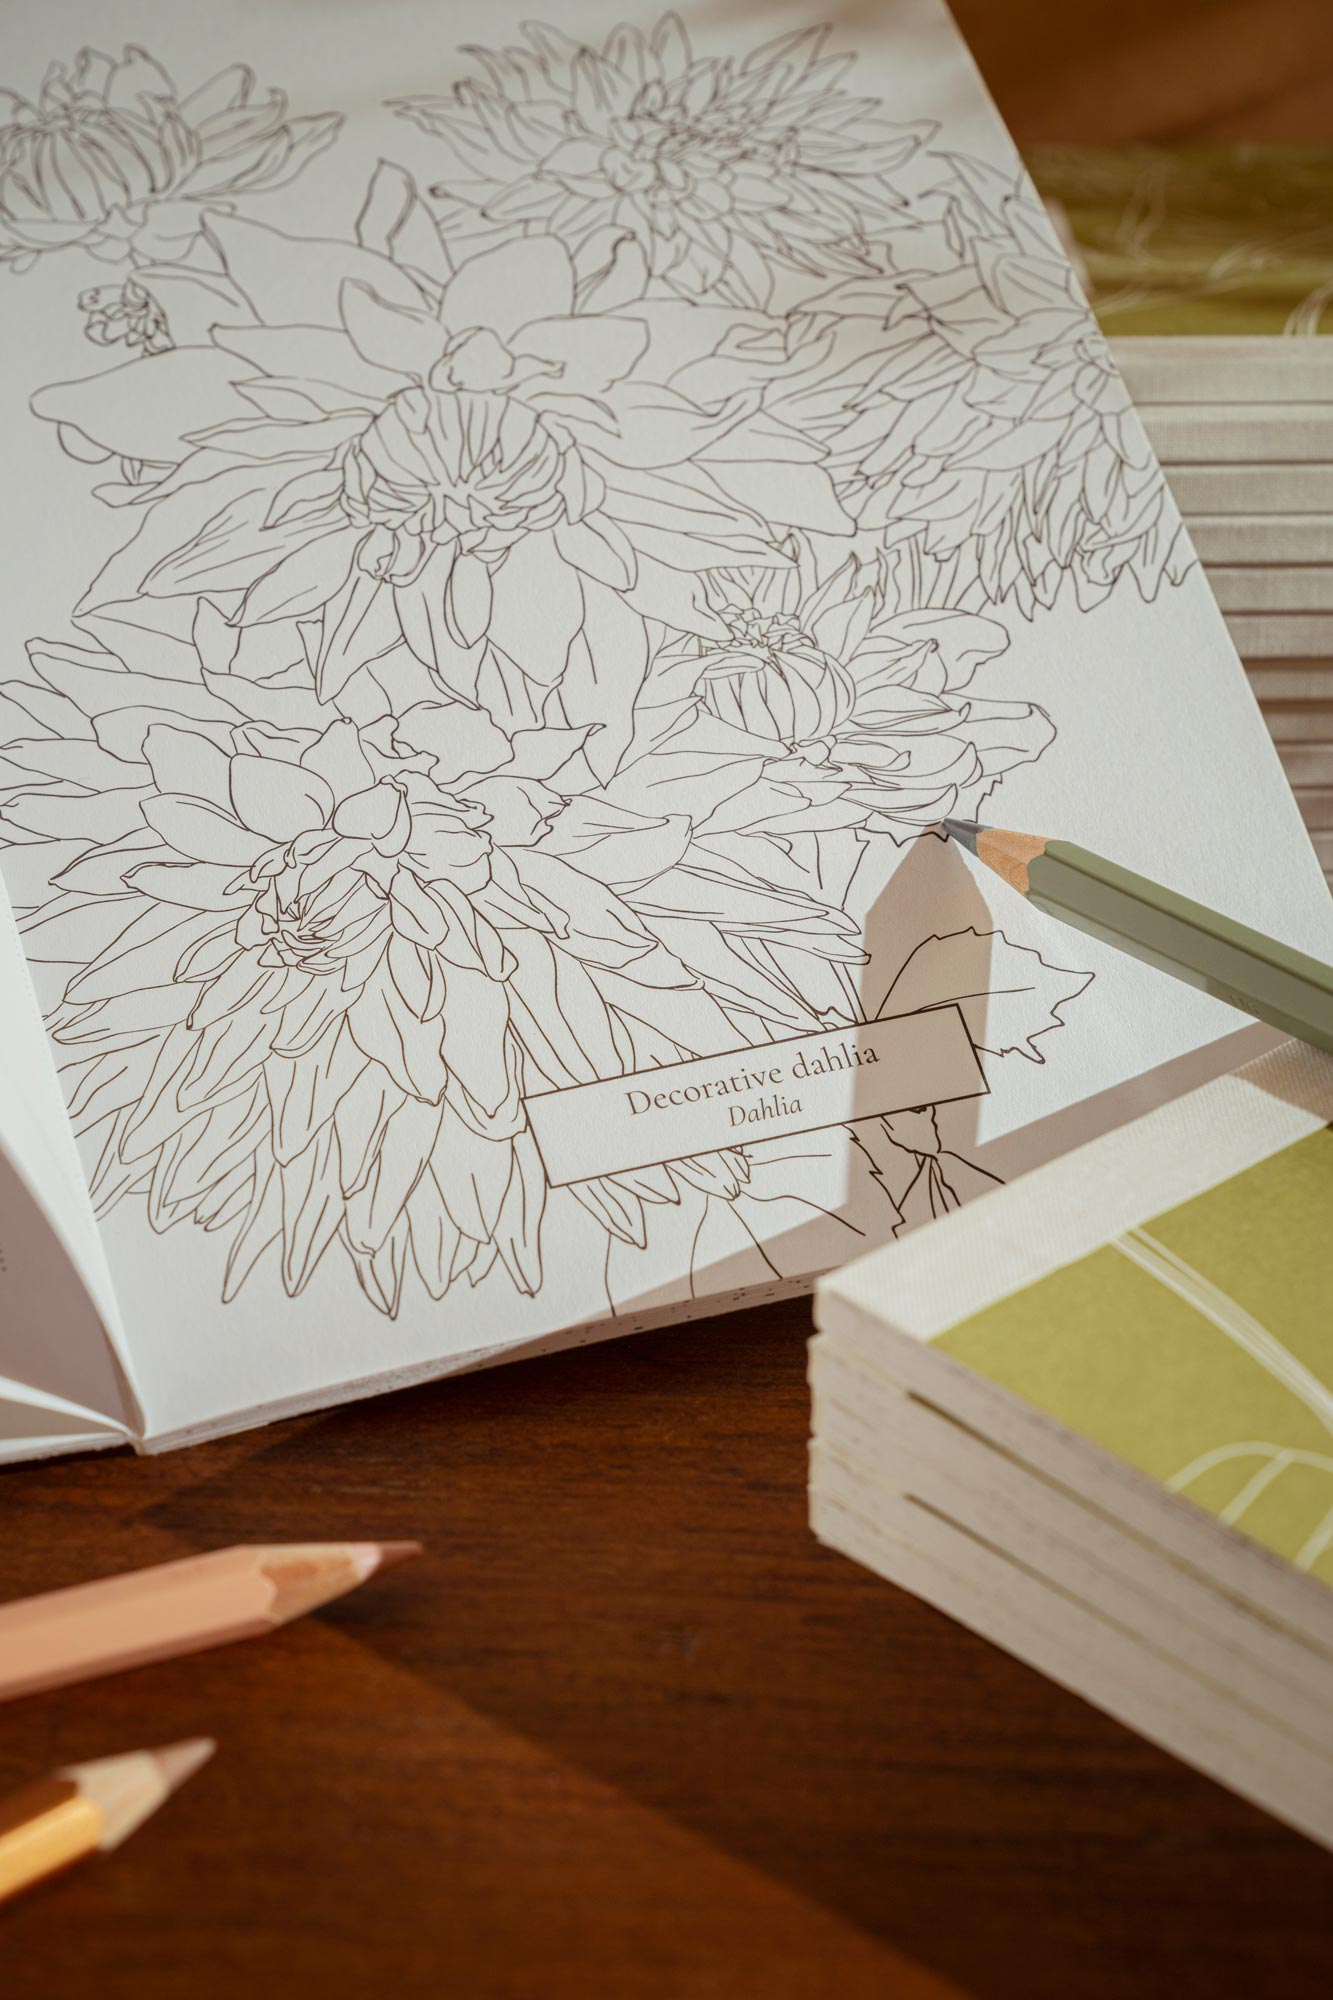 Botanical Colouring Book with recycled paper and eco friendly printing